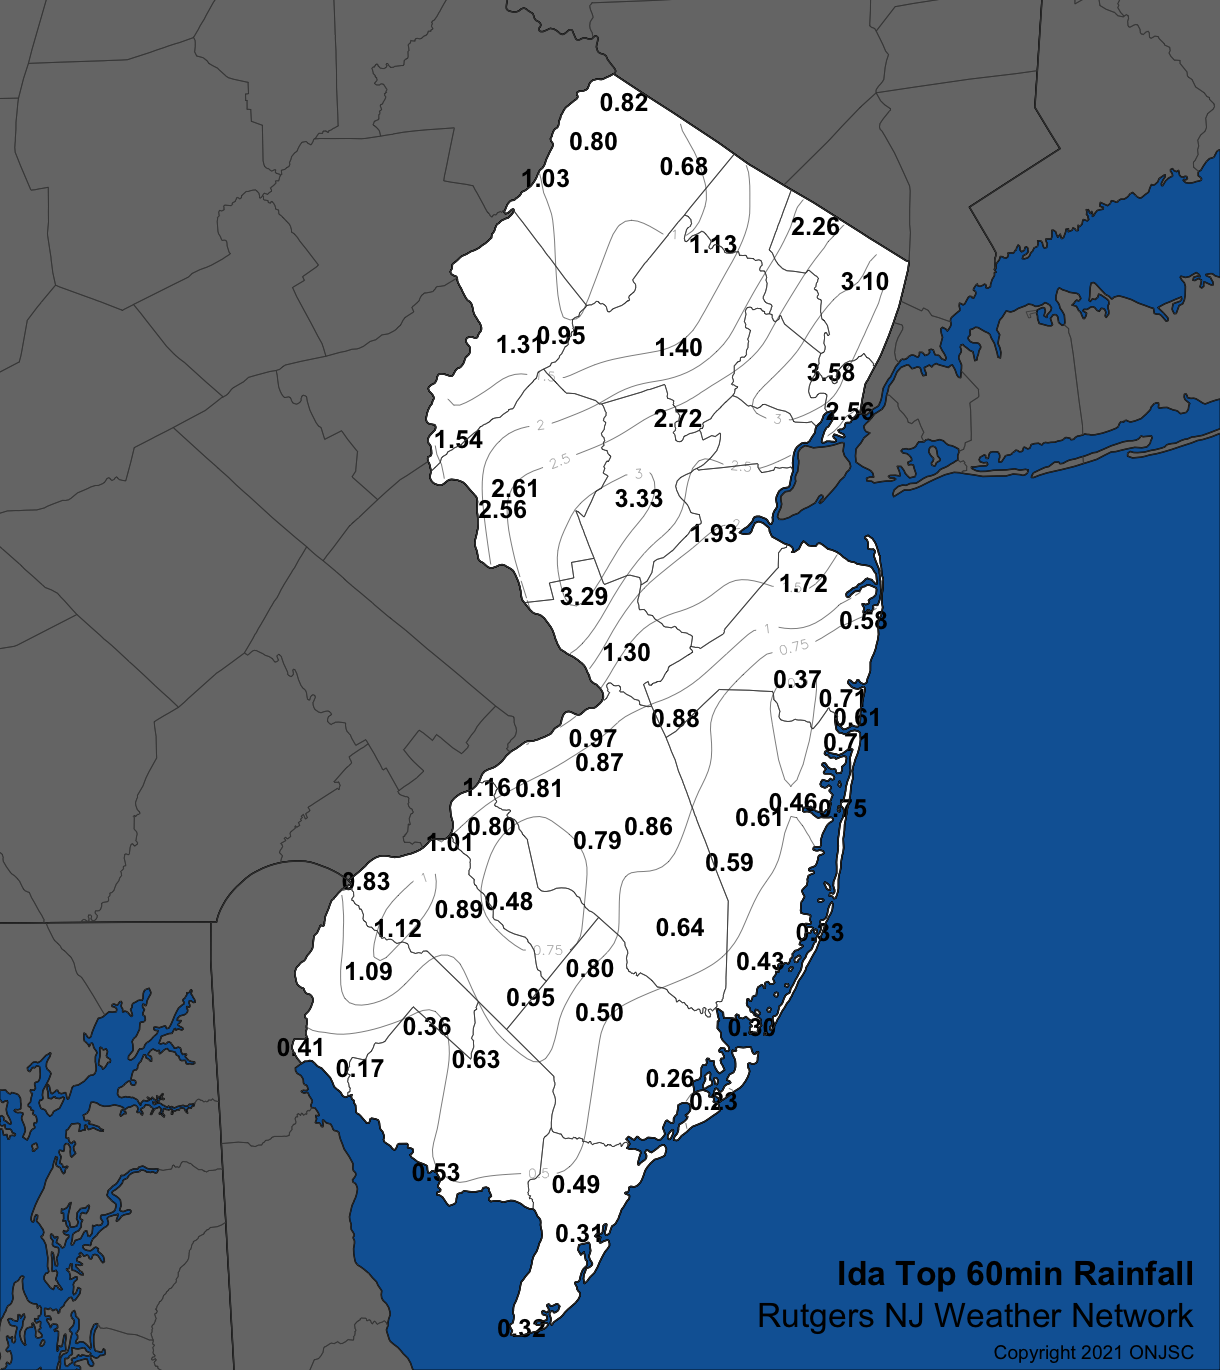 Peak one-hour rainfall across NJ based on observations from Rutgers NJWxNet stations and the Newark Airport NWS station.